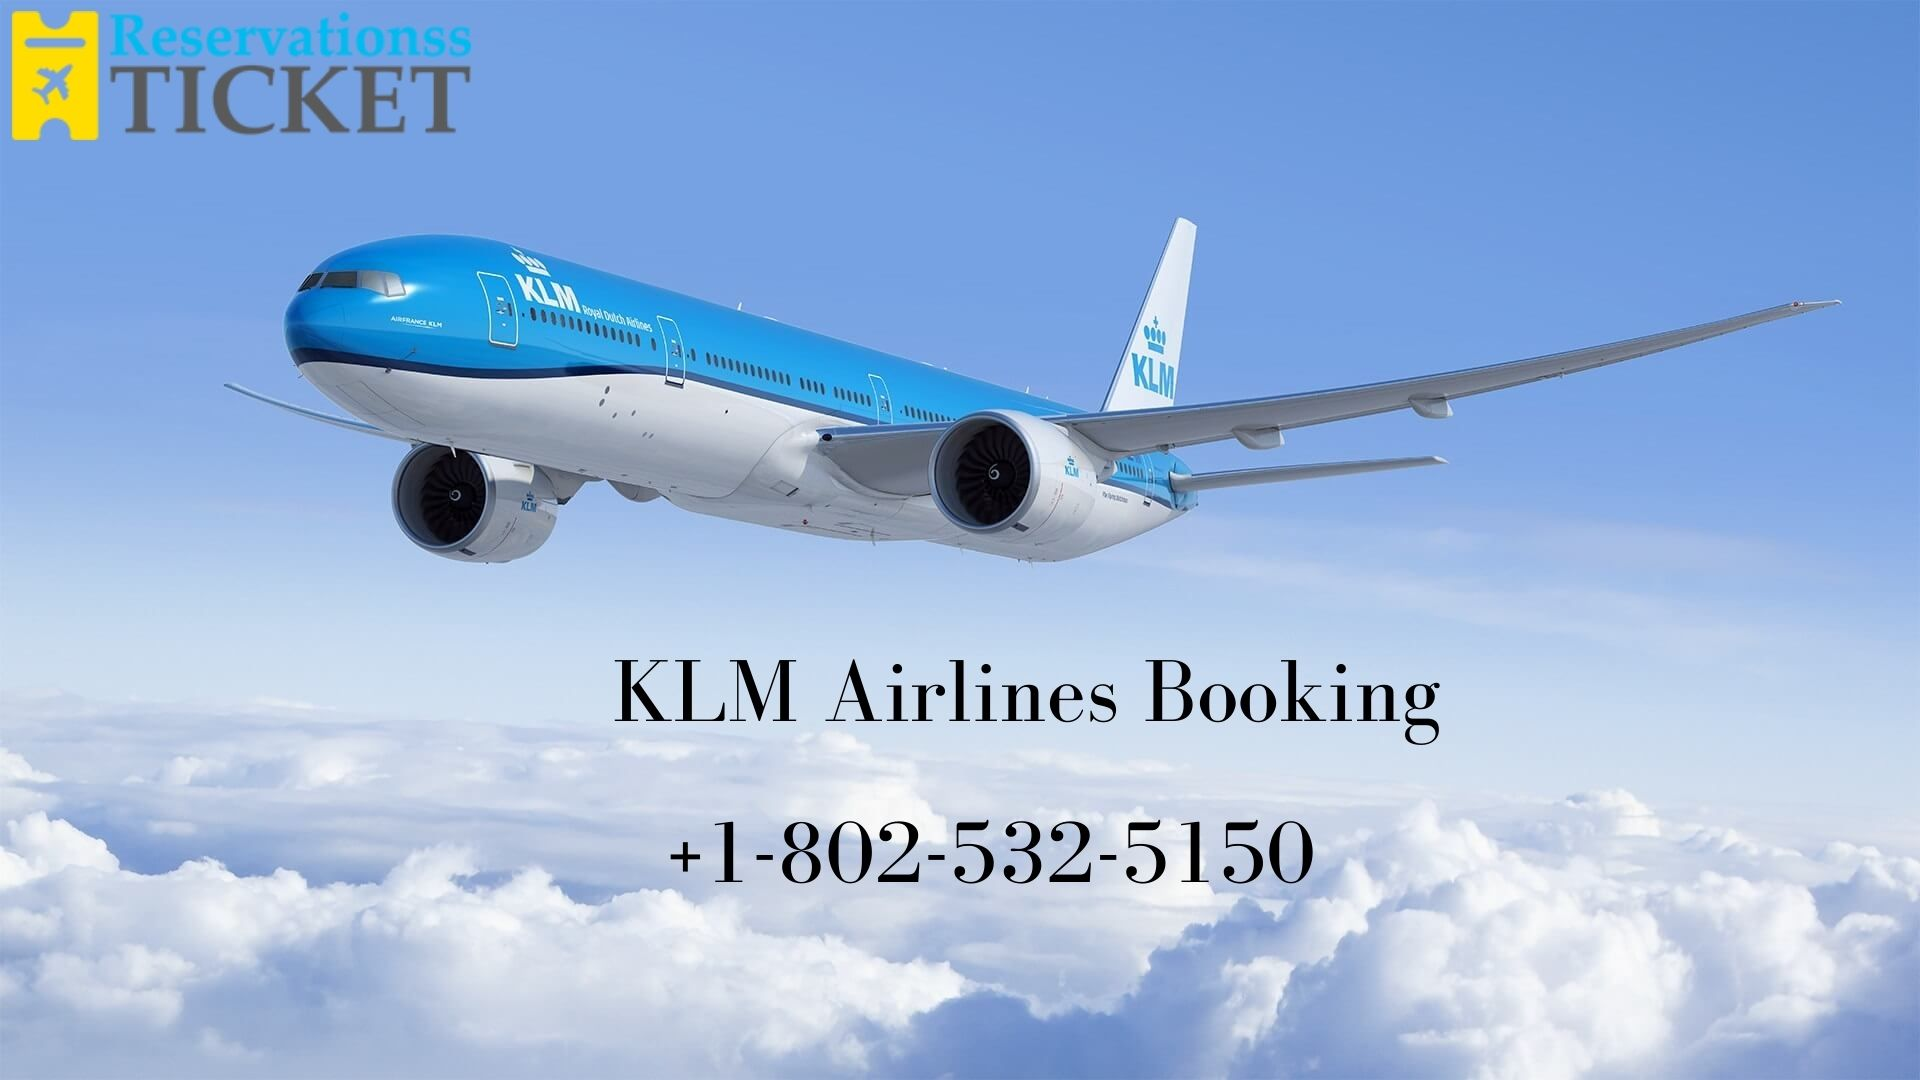 Find Cheap KLM Airlines Tickets Booking, +1-802-532-5150